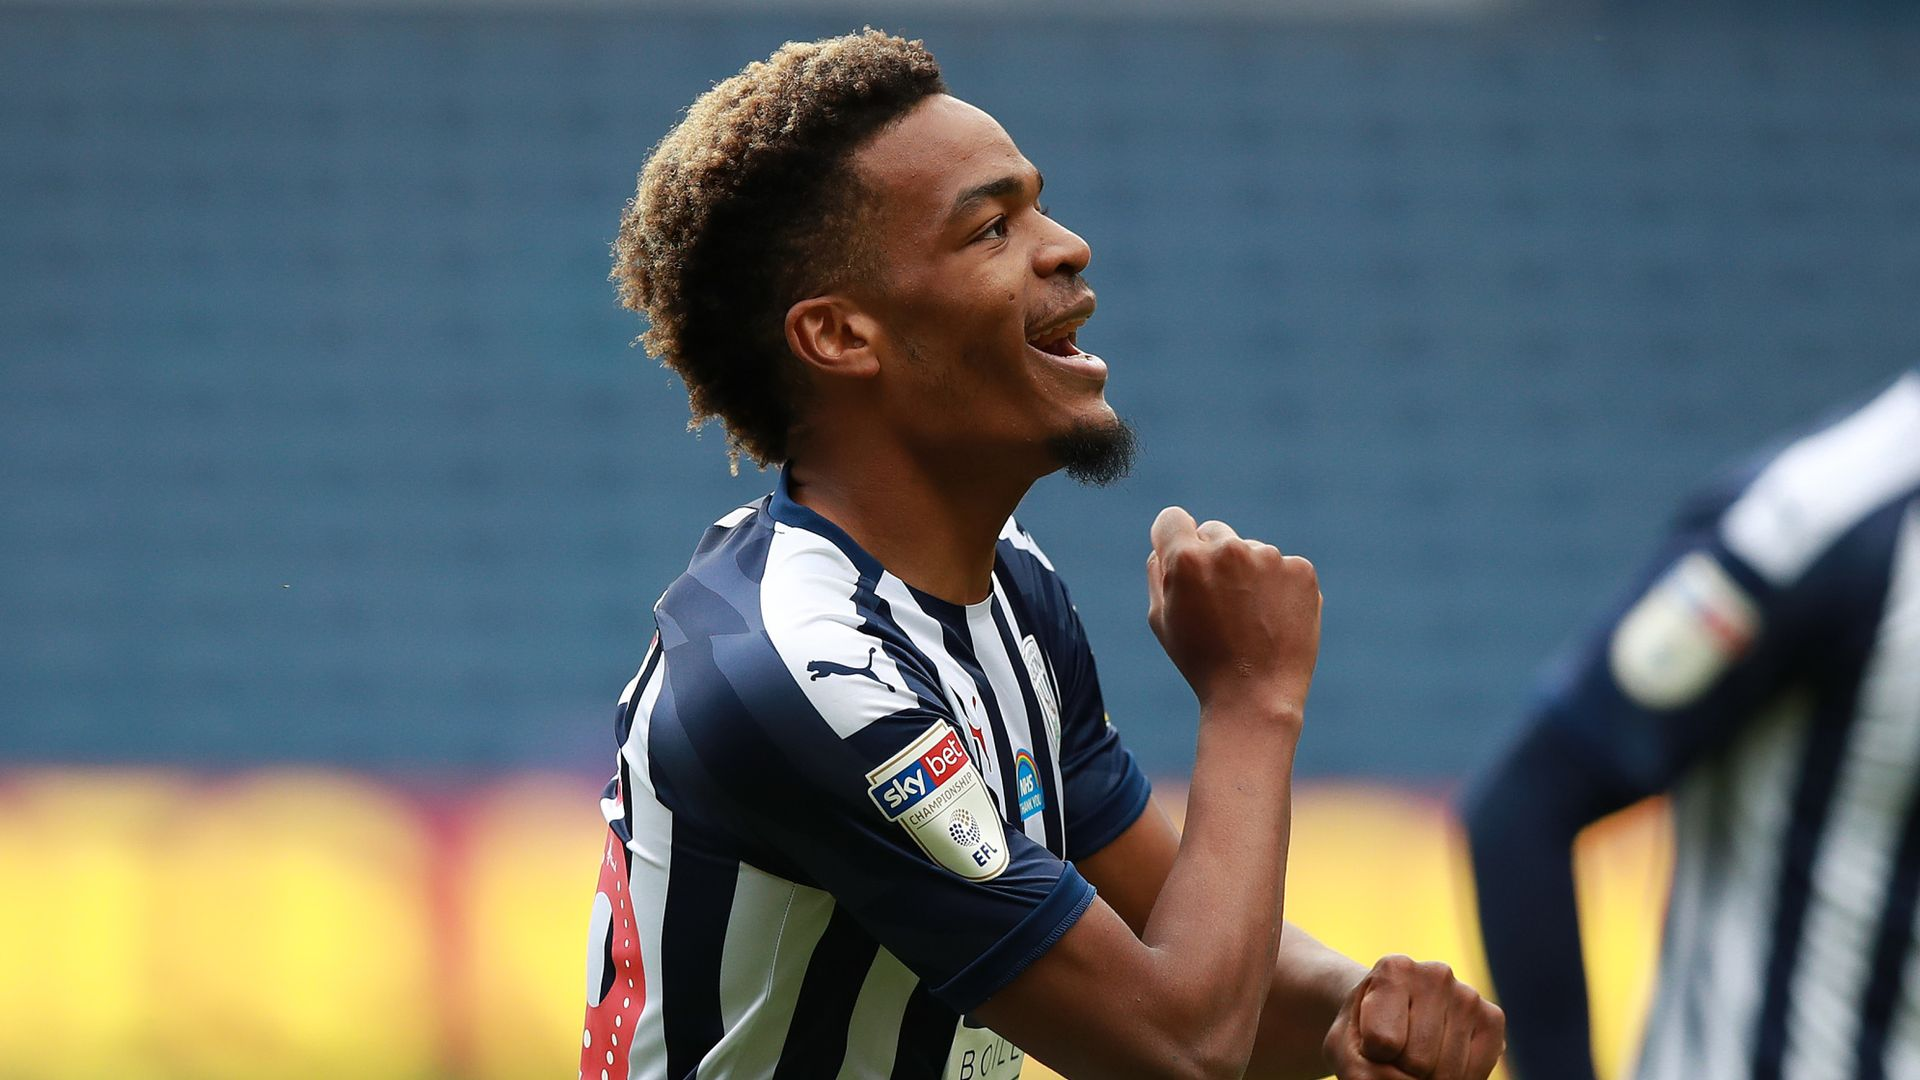 West Brom sign Diangana from West Ham